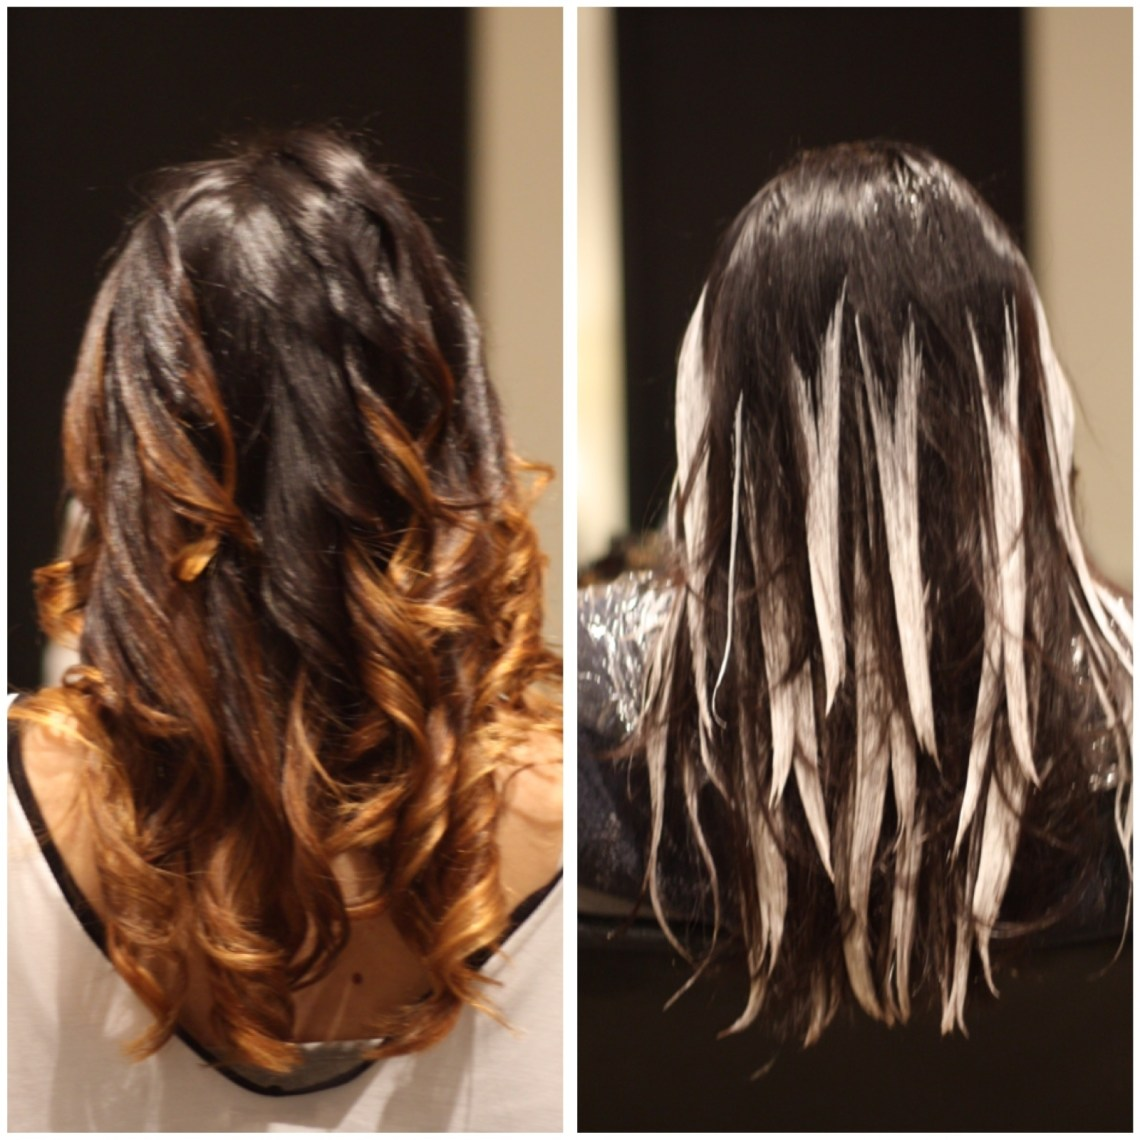 Hairstyle Trends 2015, 2016, 2017: Before/After Photos Brunette Medium Hairstyles 2015